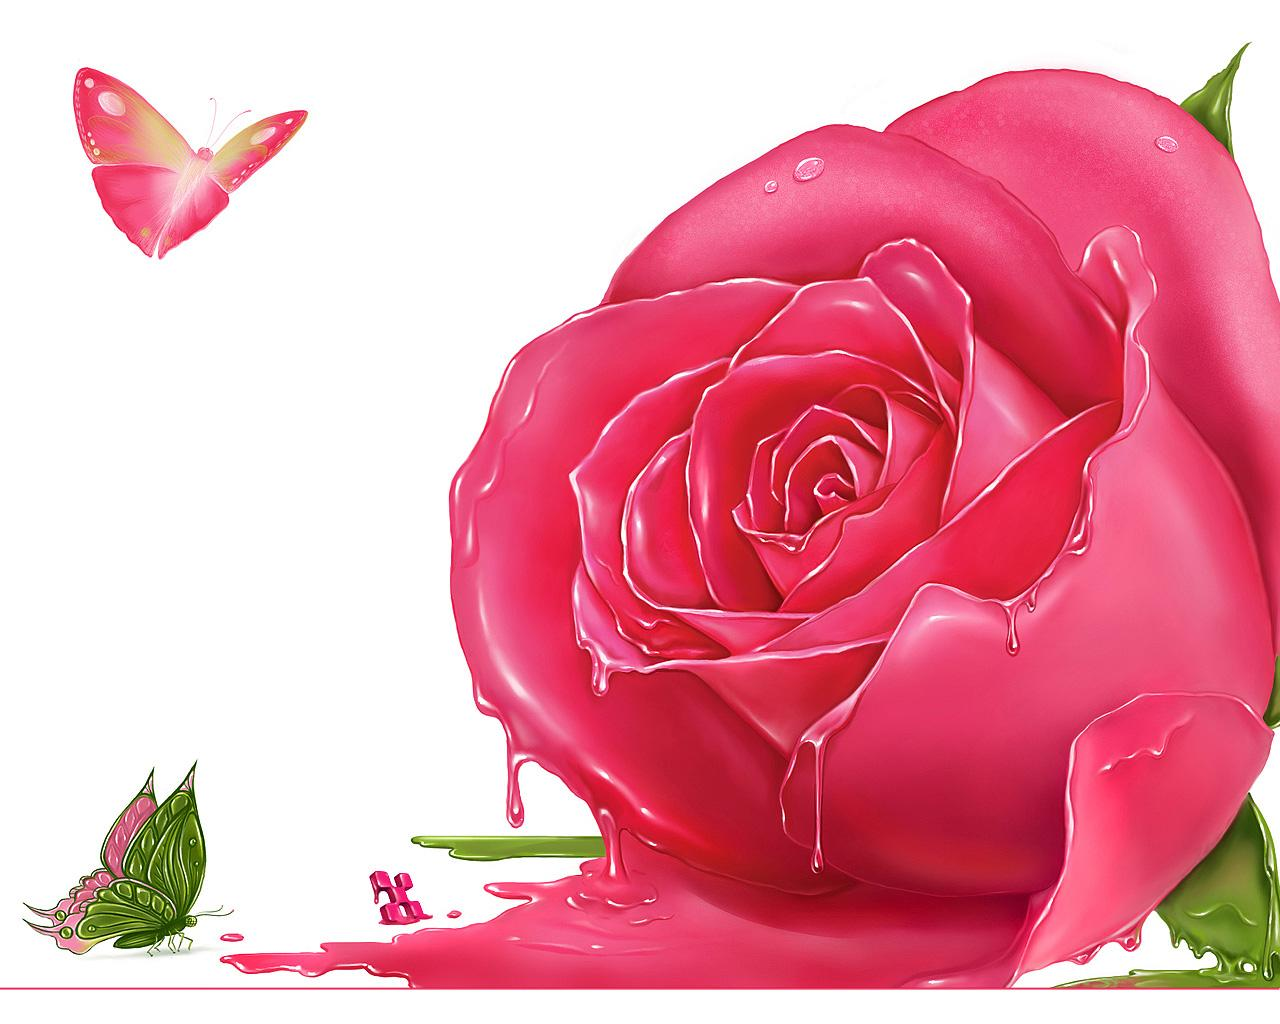 roses pics of pink roses pink roses background wallpapers 1280x1024